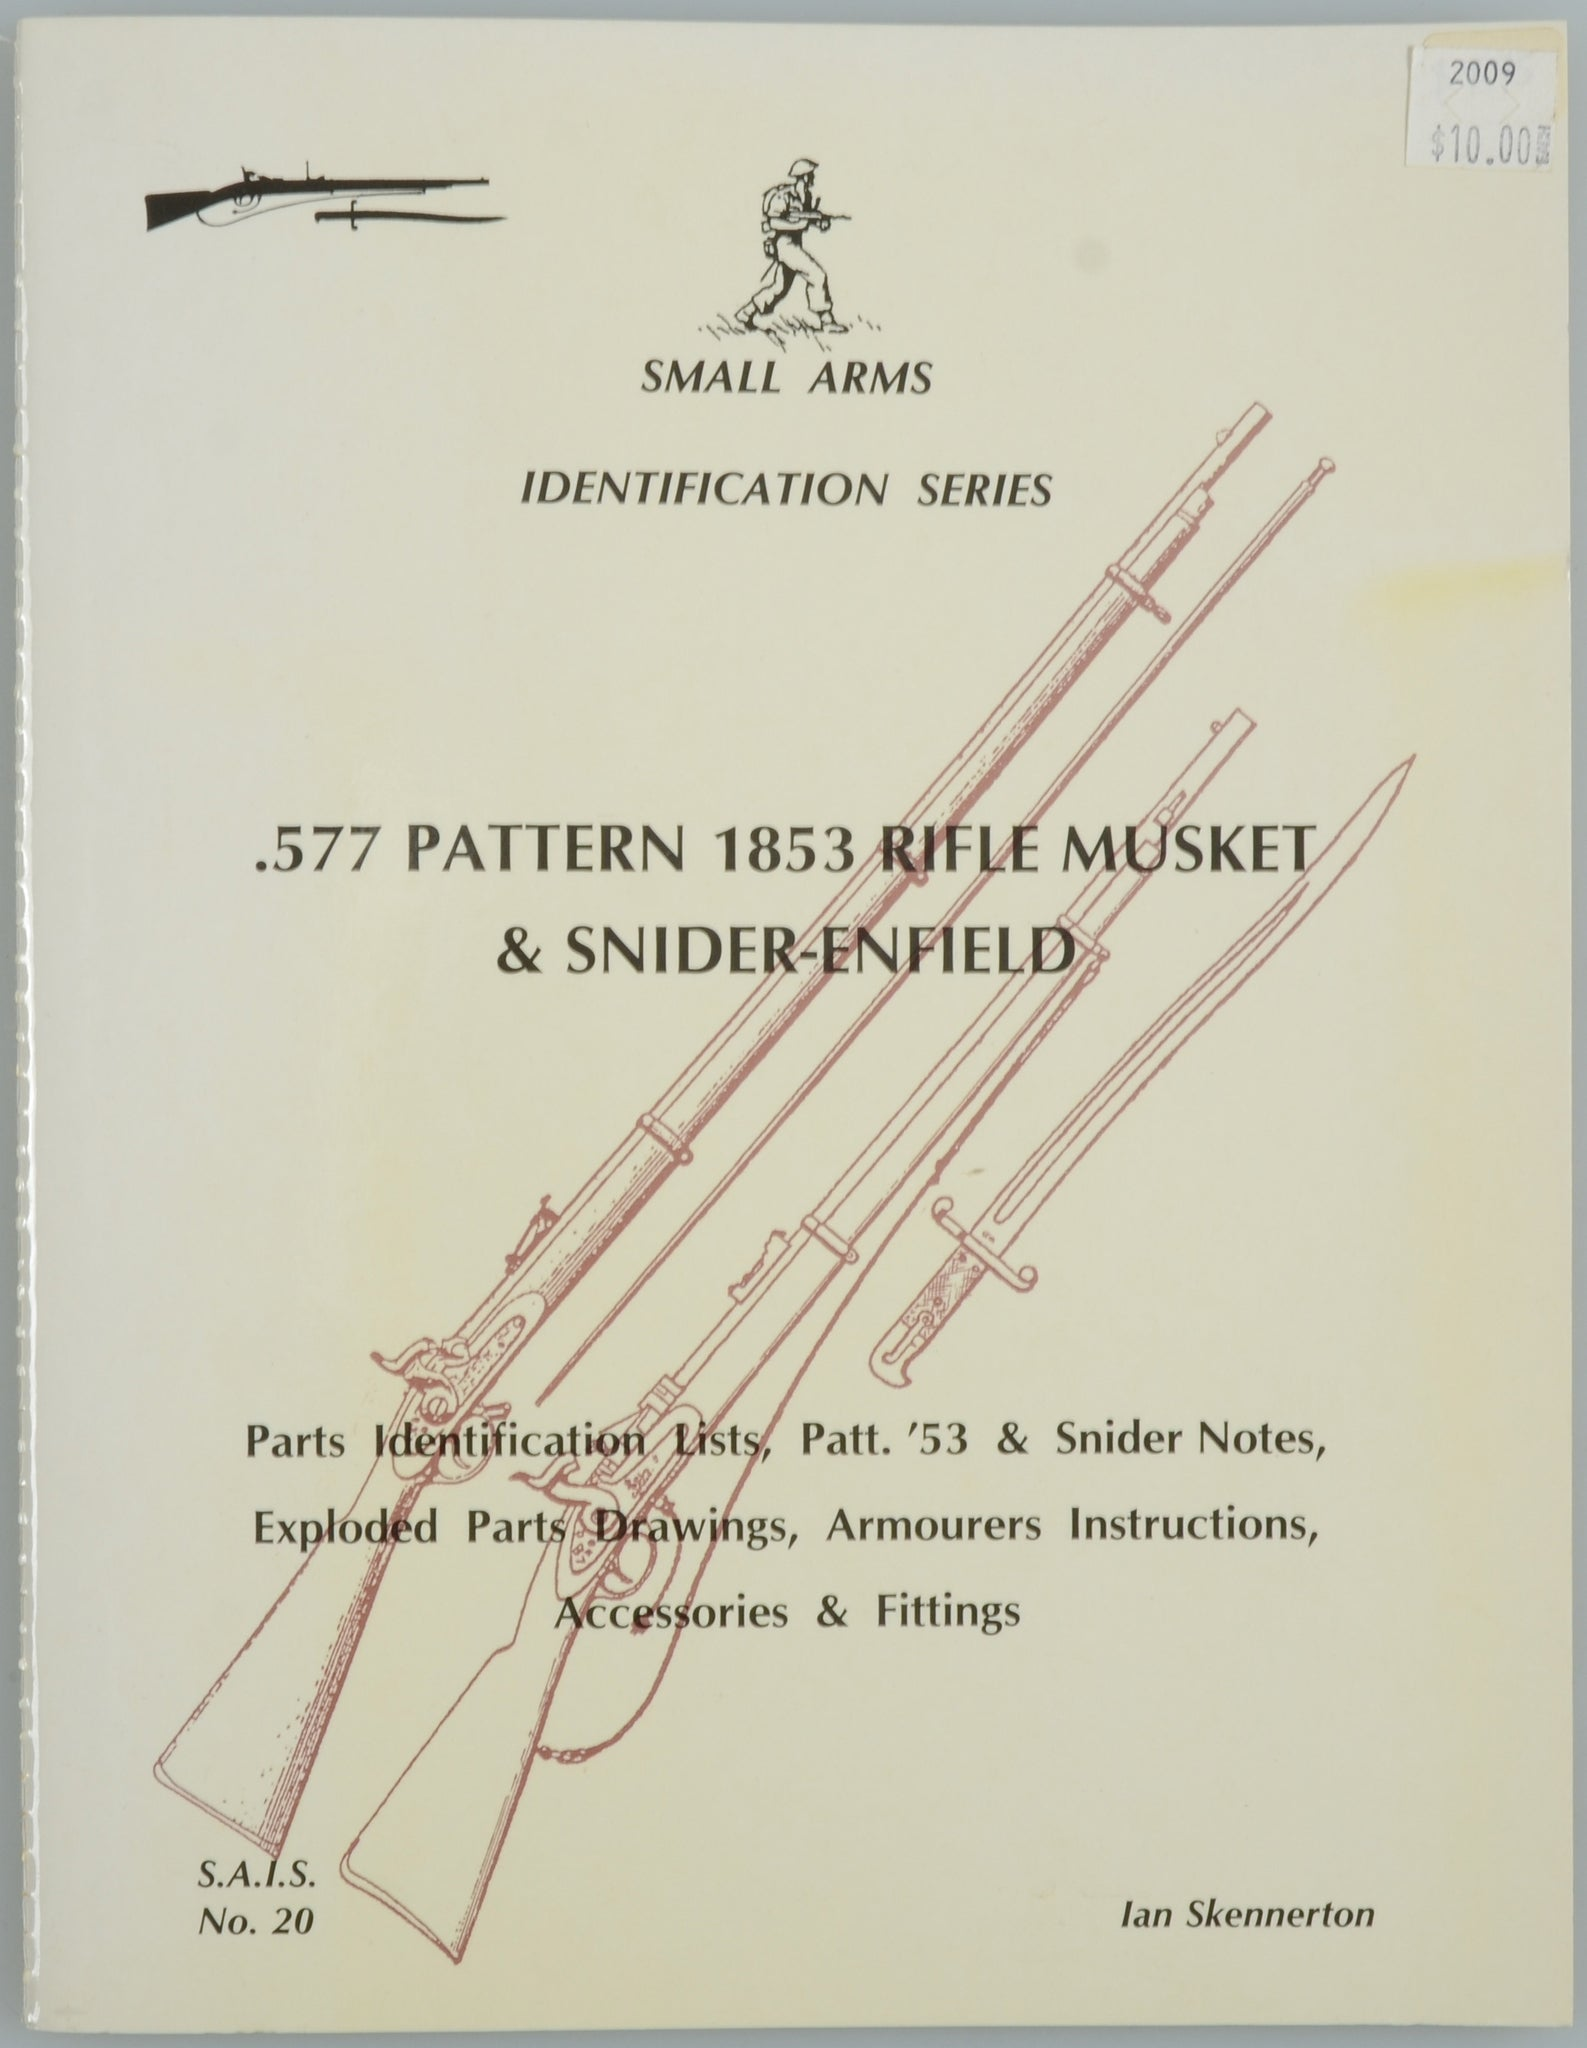 .577 PATTERN 1853 RIFLE MUSKET & SNIDER-ENFIELD